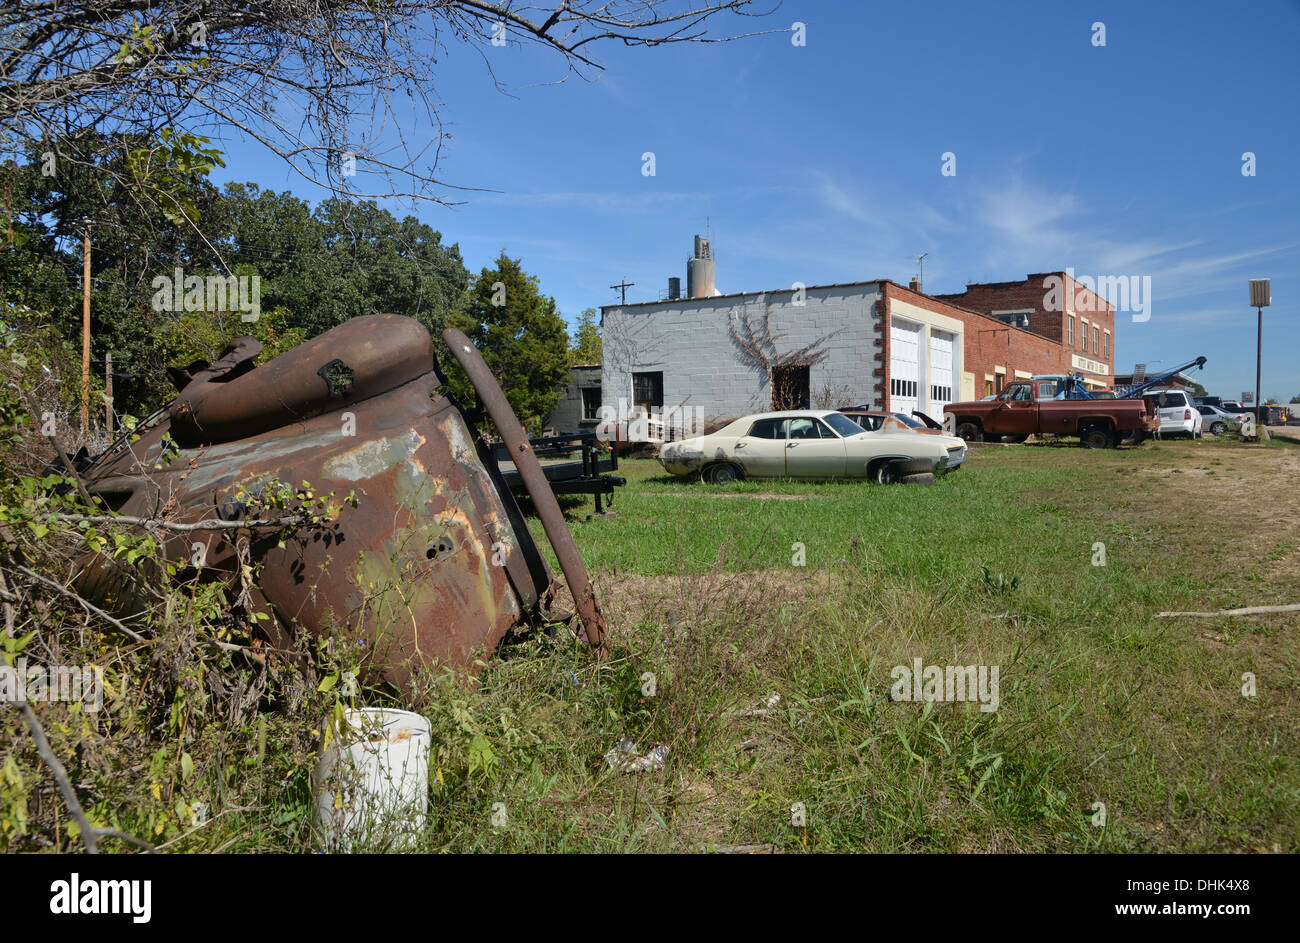 Old cars outside Ritter Motor Company, St Claire, Missouri - an old family run garage along historic Route 66 - Stock Image